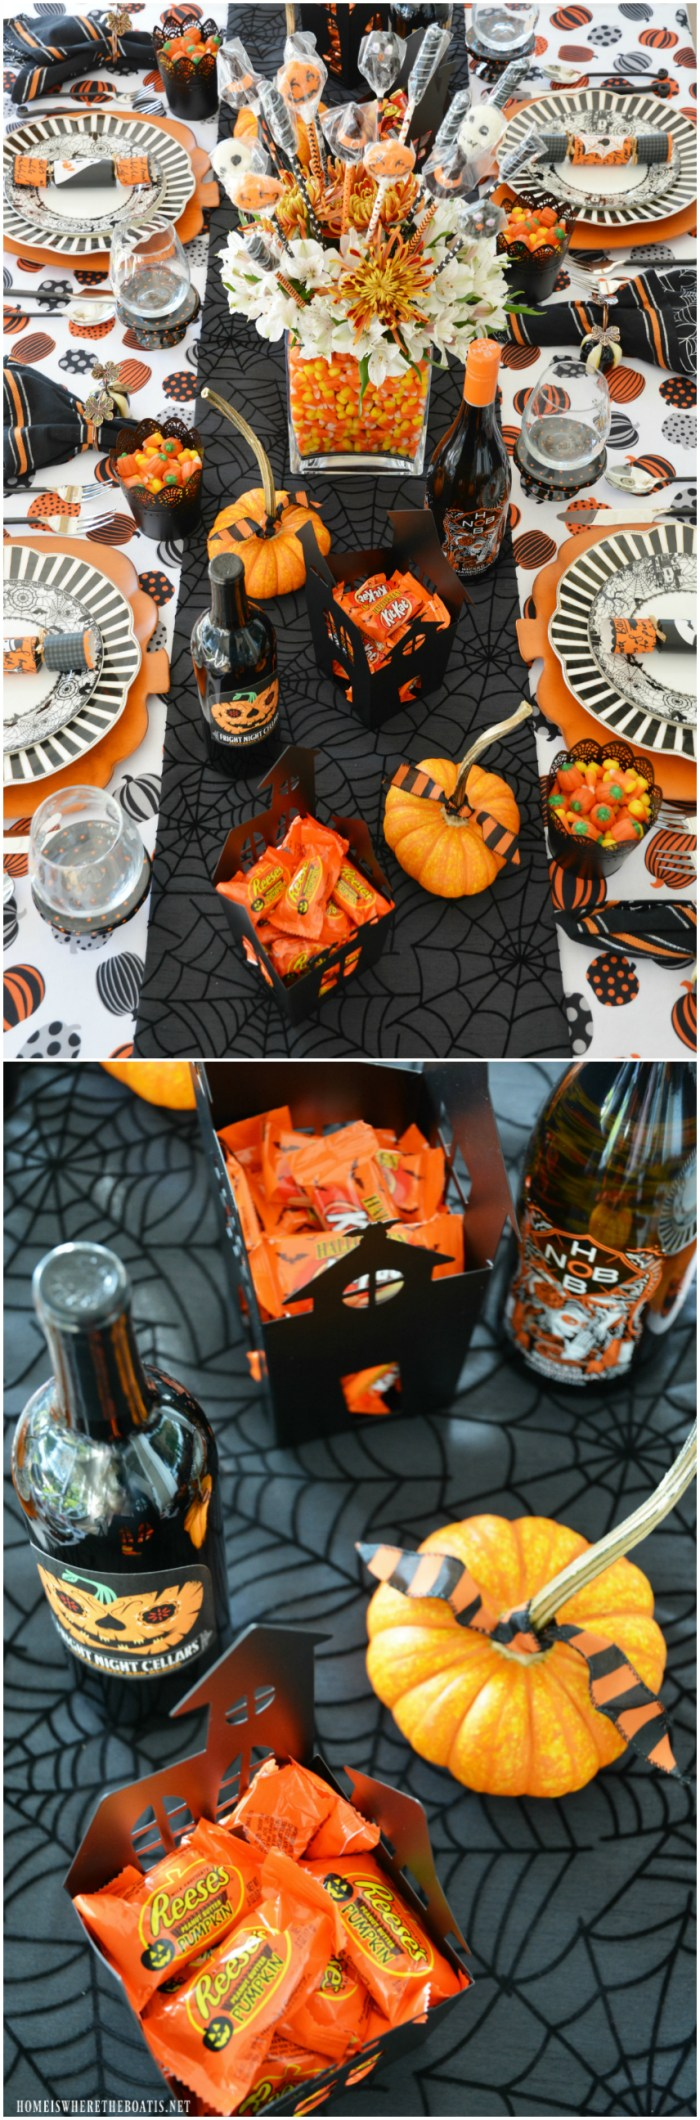 Candy Corn Centerpiece DIY and Happy HalloWine and Candy Pairing Tablescape | ©homeiswheretheboatis.net #Halloween #tablesetting #Hallowine #tablescape #candycorn #DIY